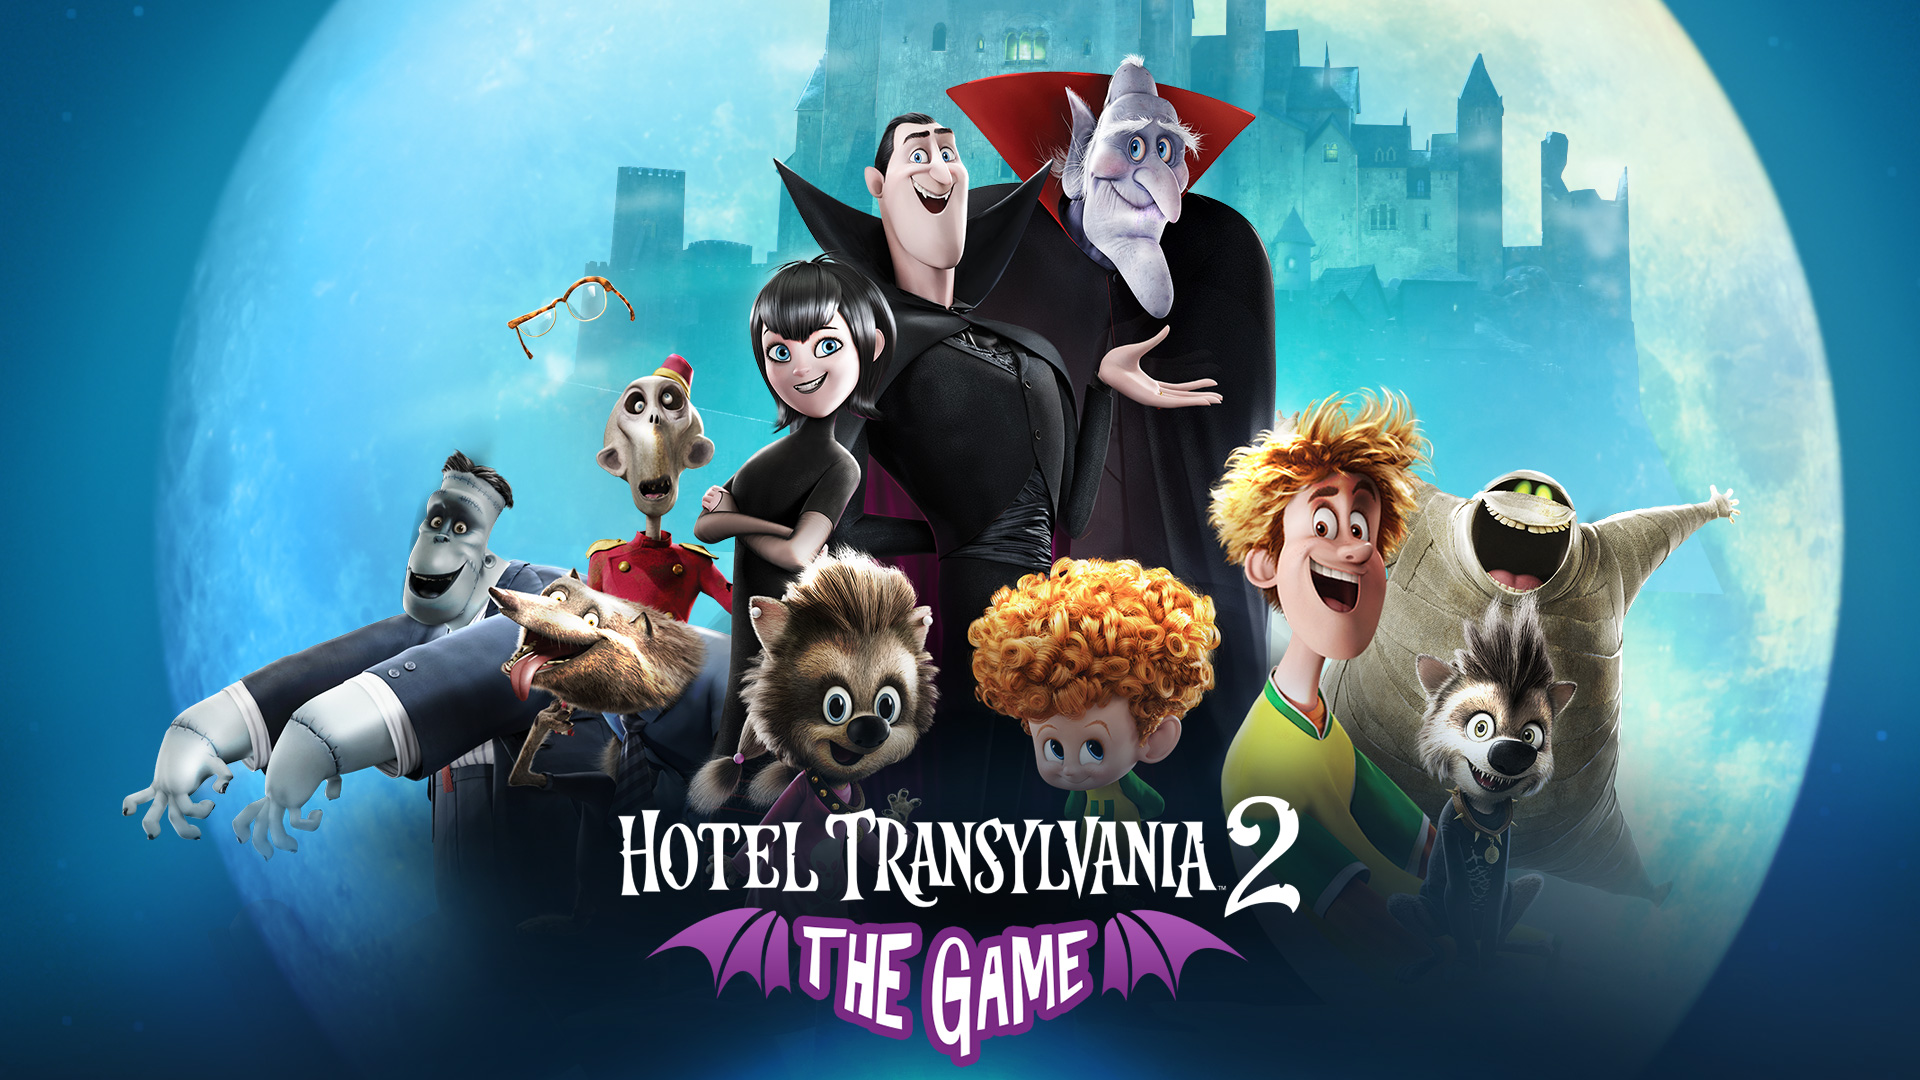 Create your own unique monster lands in Hotel Transylvania 2 out now on iOS and Android